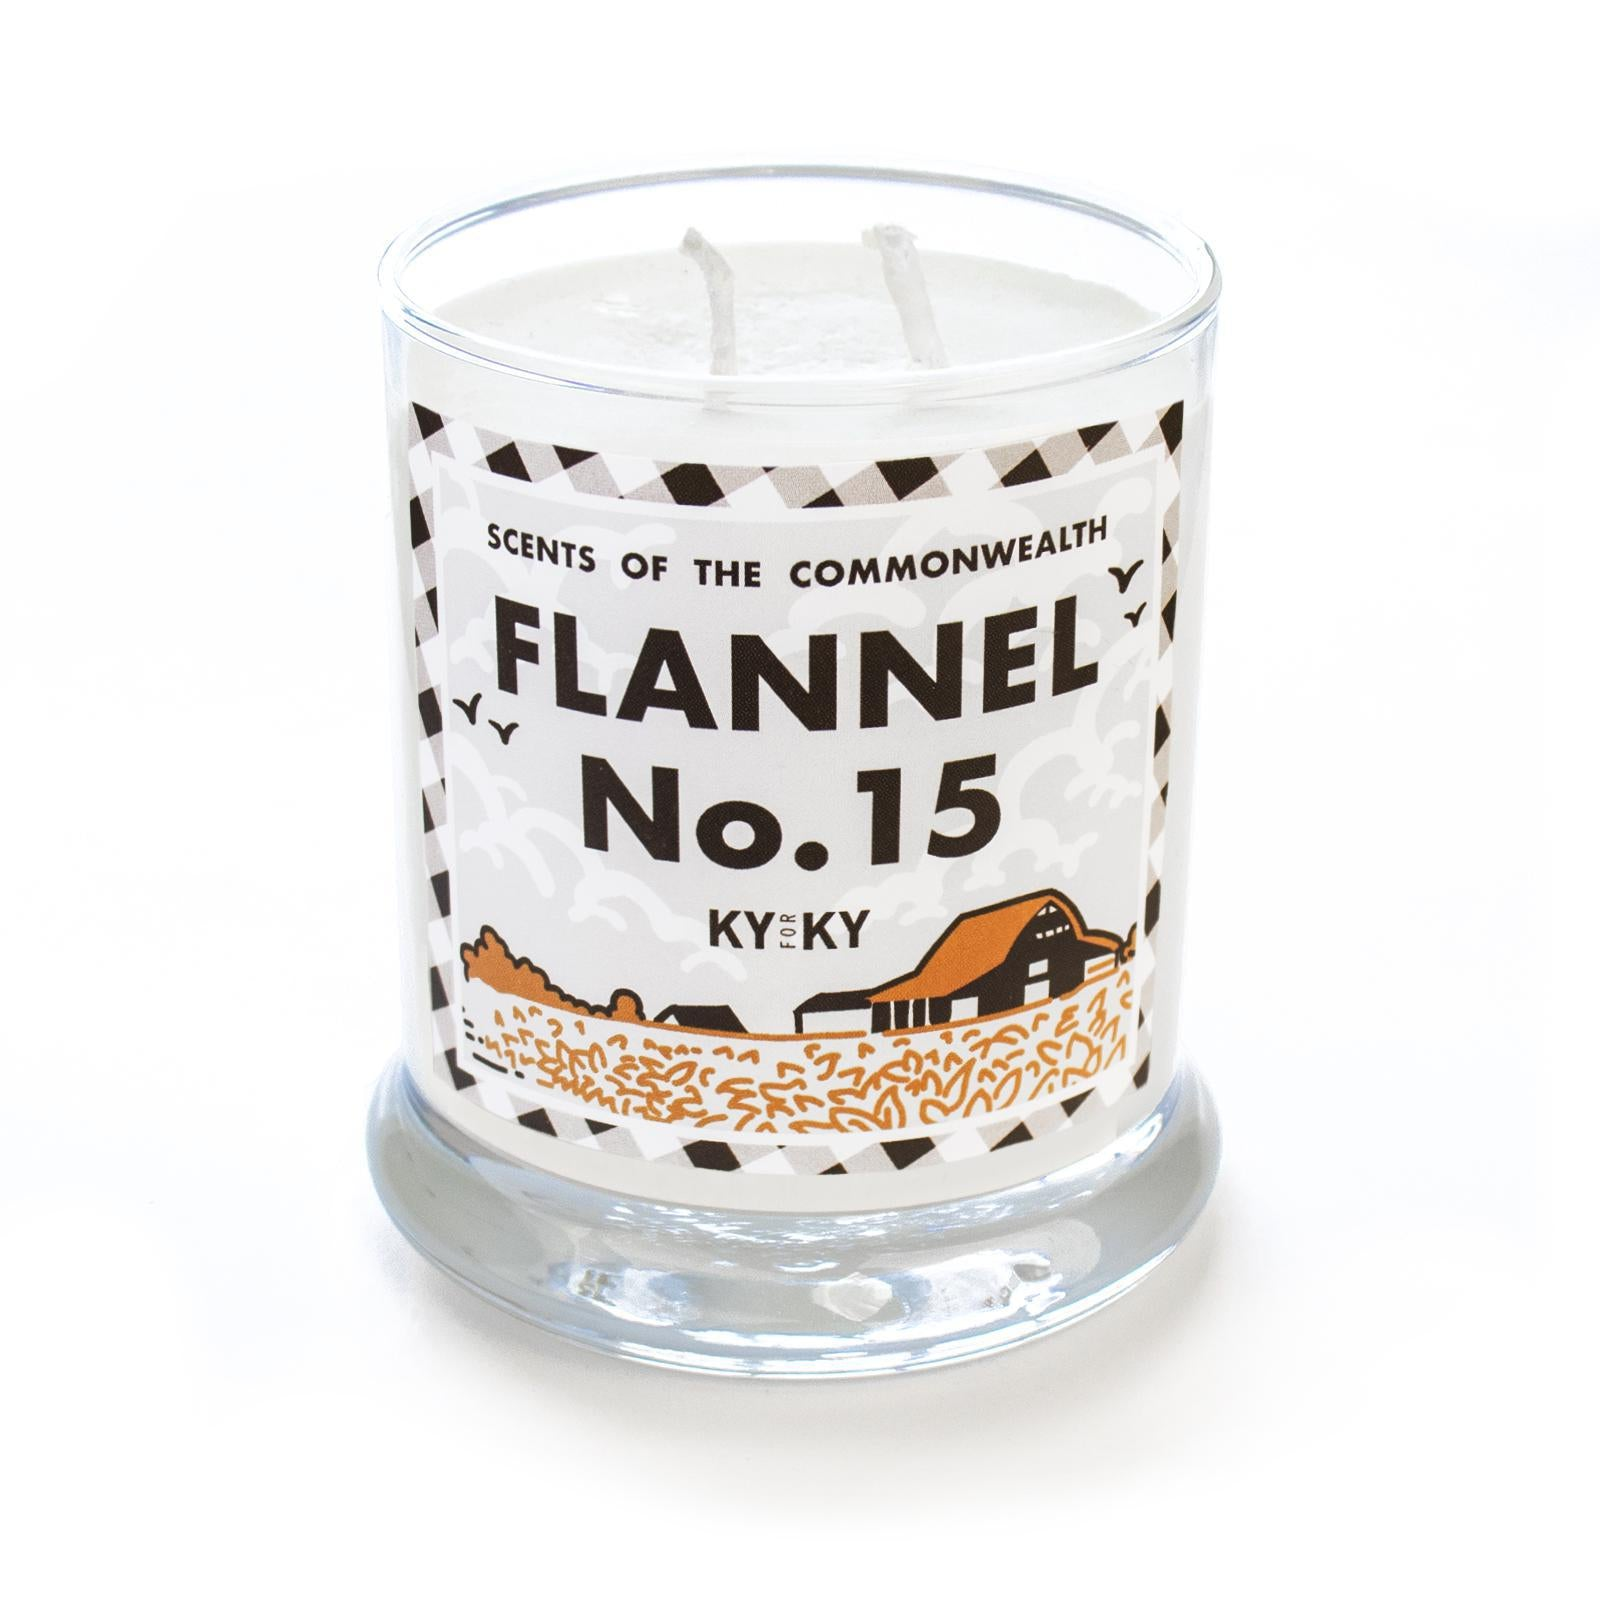 Flannel No. 15 Candle-Odds and Ends-KY for KY Store